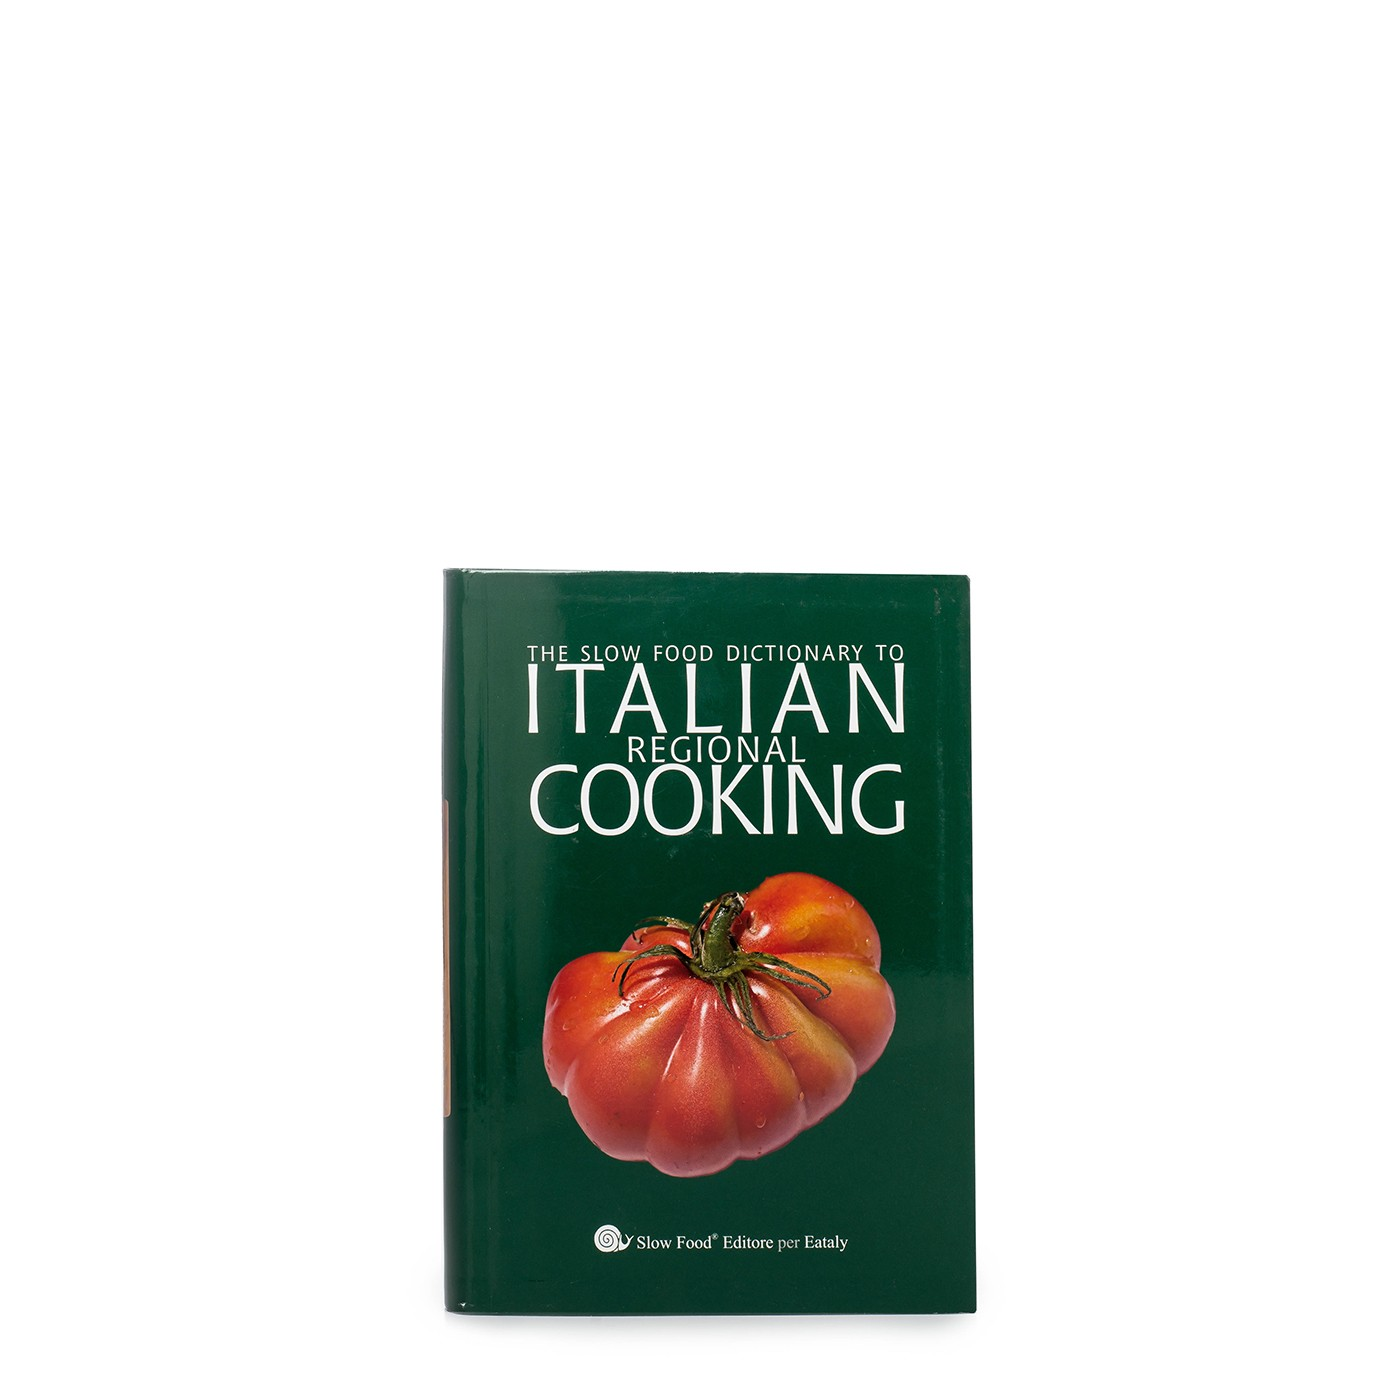 The Slow Food Dictionary To Regional Italian Cooking (paperback)